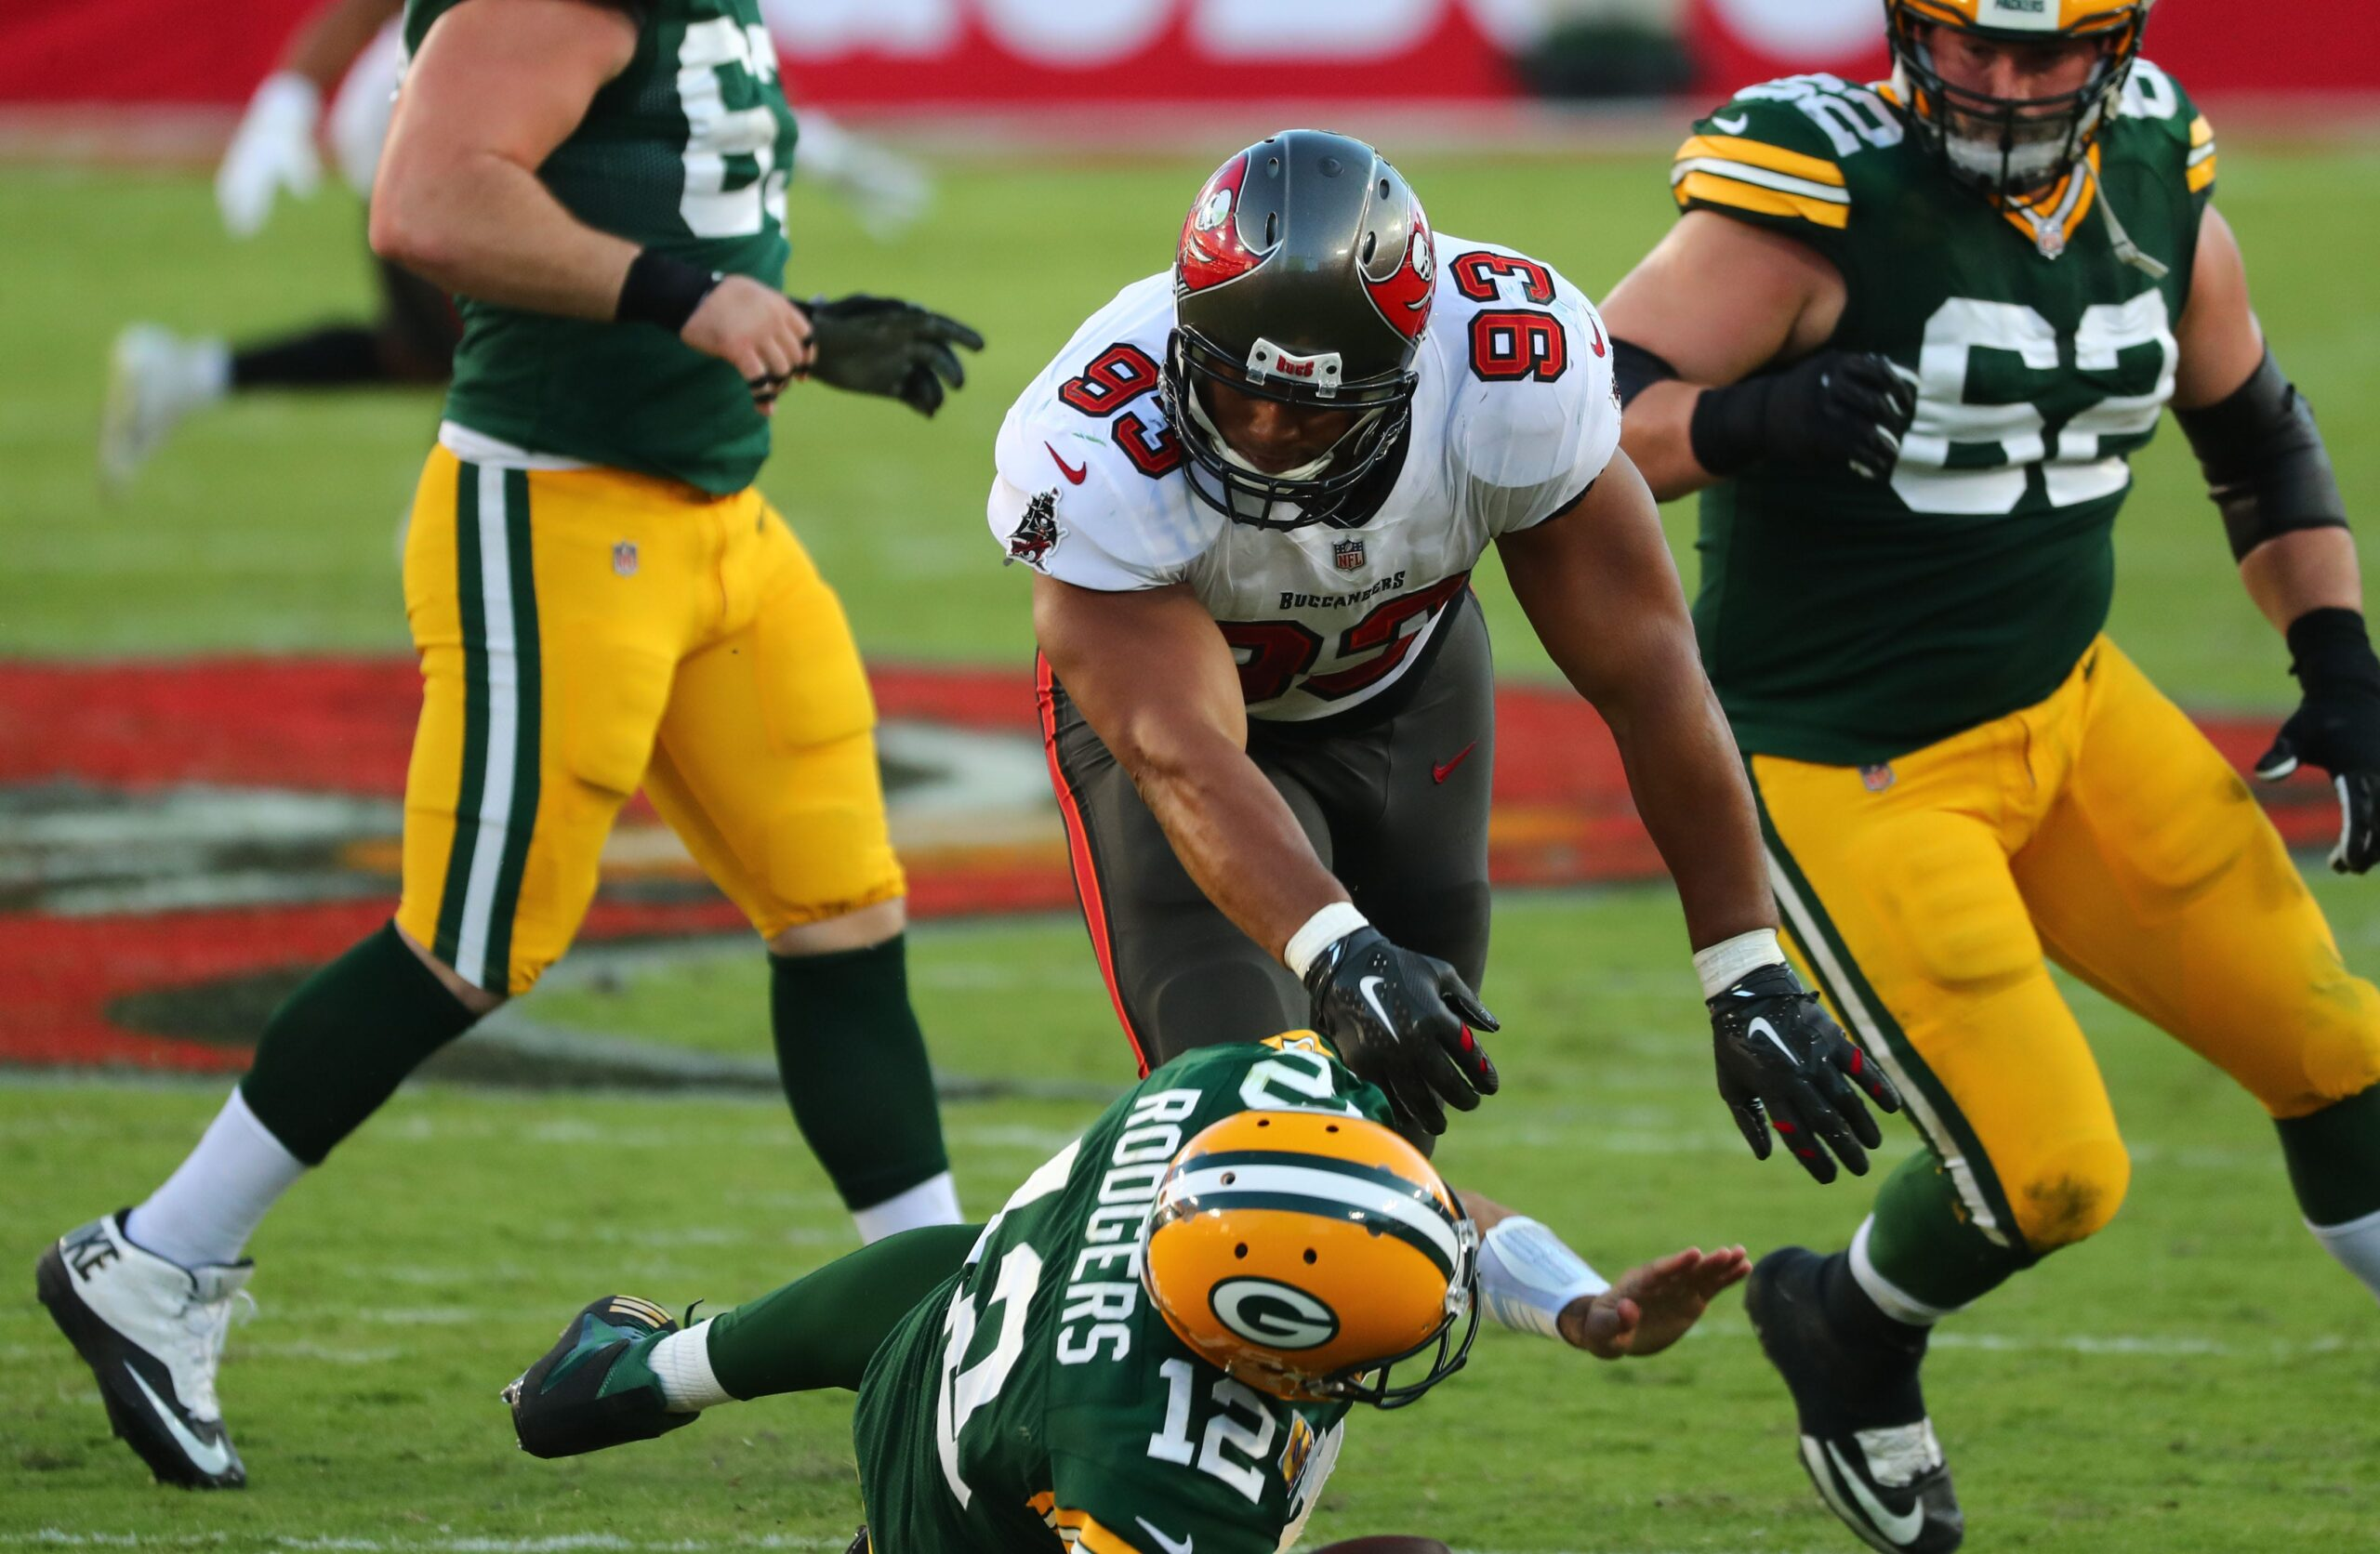 Packers get trounced by Bucs: Is the sky falling?